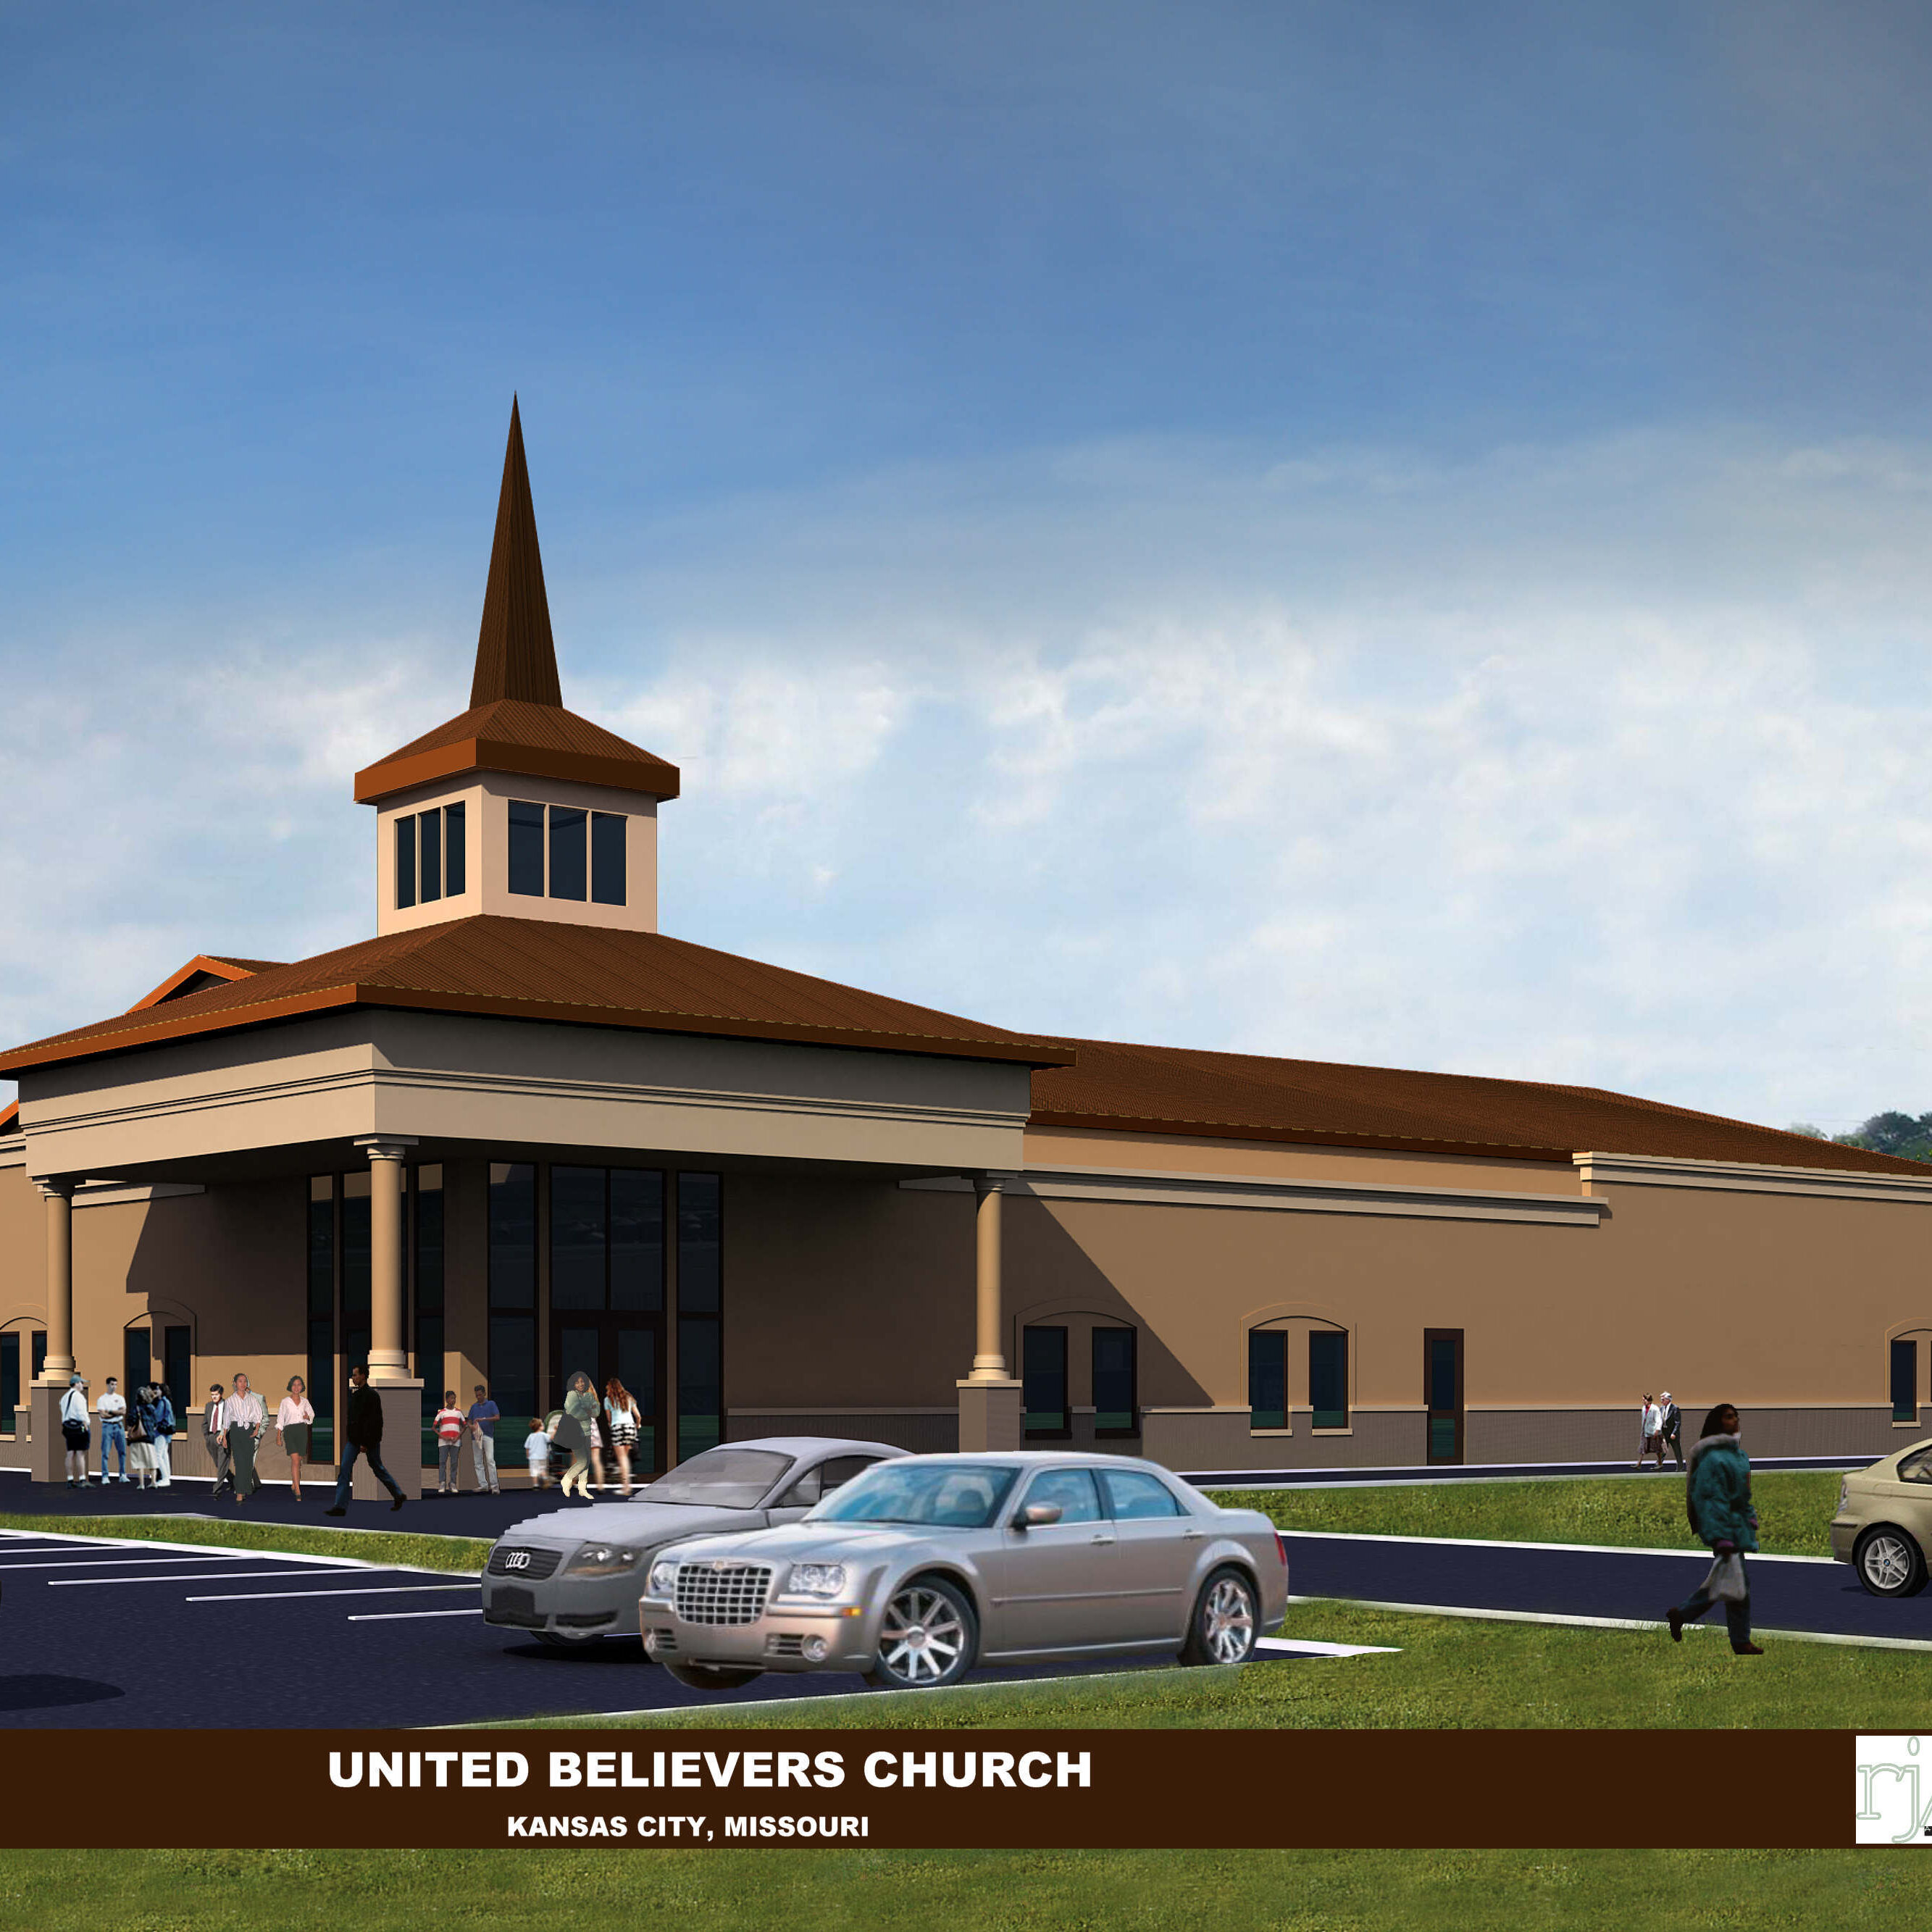 UNITED BELIEVERS COMMUNITY CHURCH (NEW FACILITY -- CHURCH RENDERING)